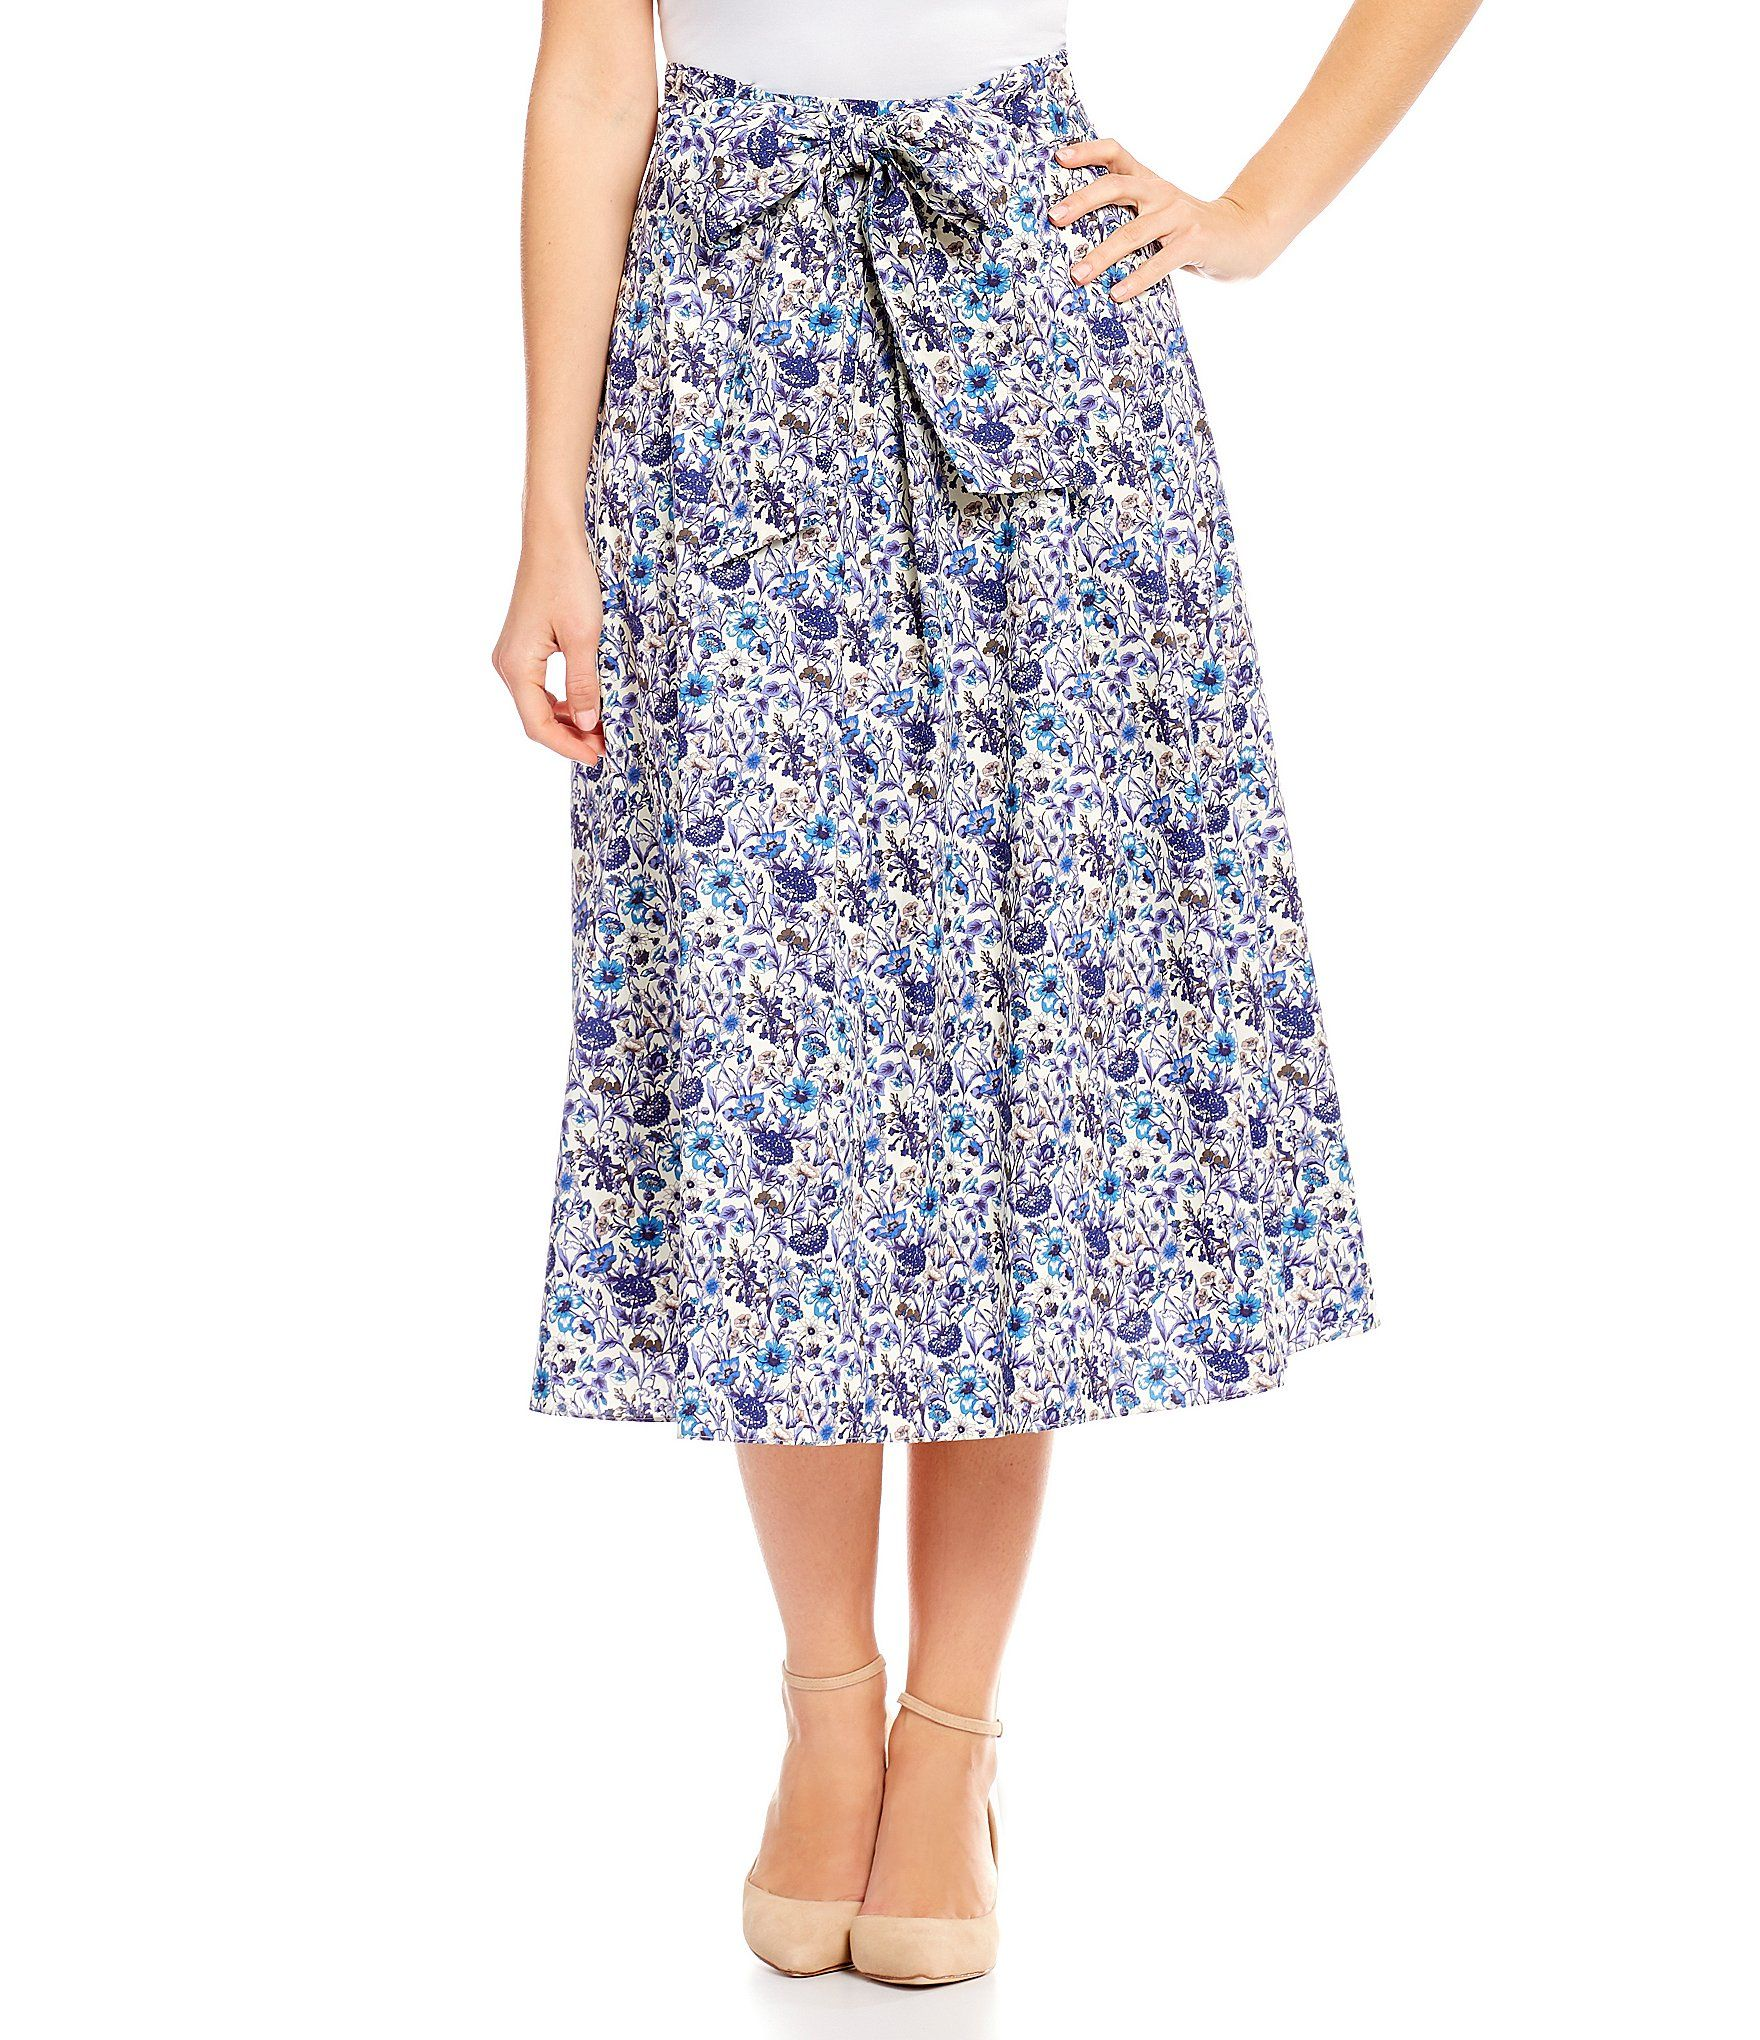 72d0eaa2ad8 Shop for Antonio Melani Charlotte Skirt Made With Liberty Fabrics at ...